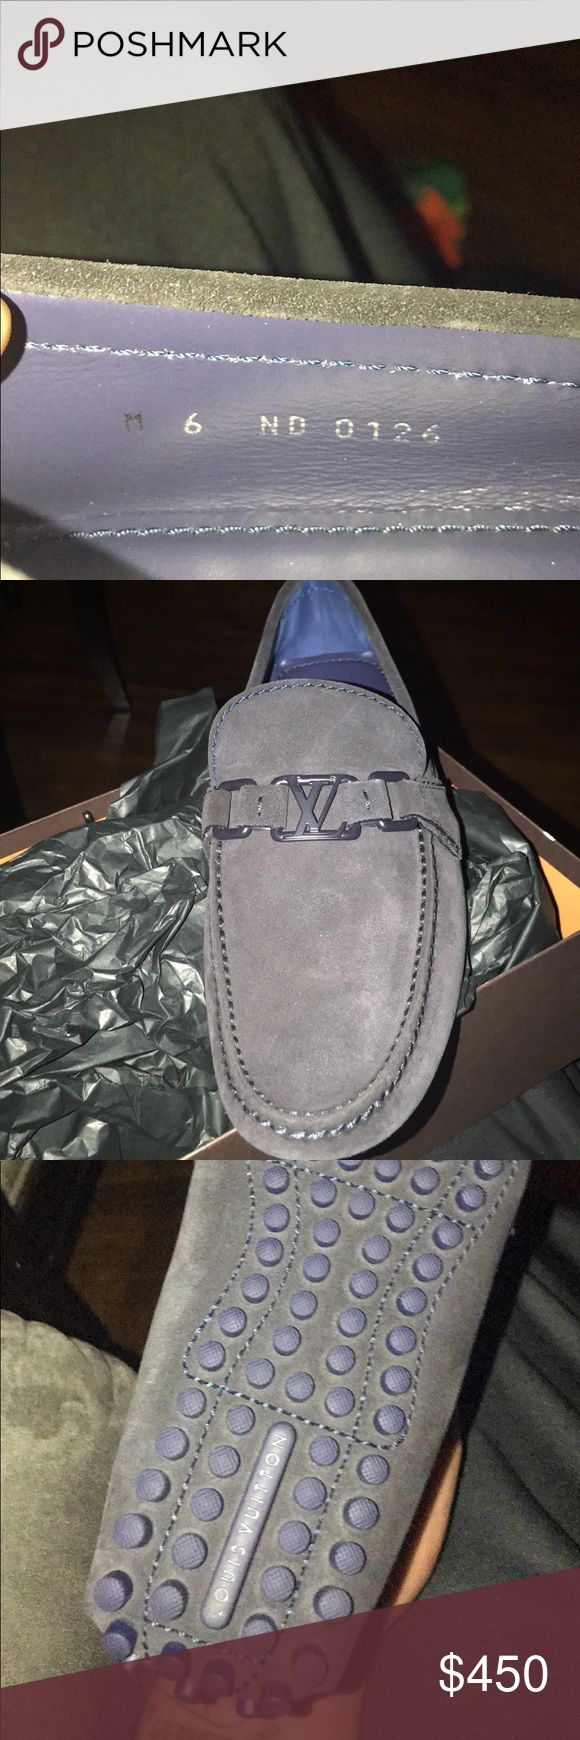 Louis Vuitton loafer LouisVuitton car shoe brand new as is storage box LV size 6 is a USA size 7 Louis Vuitton Shoes Loafers & Slip-Ons